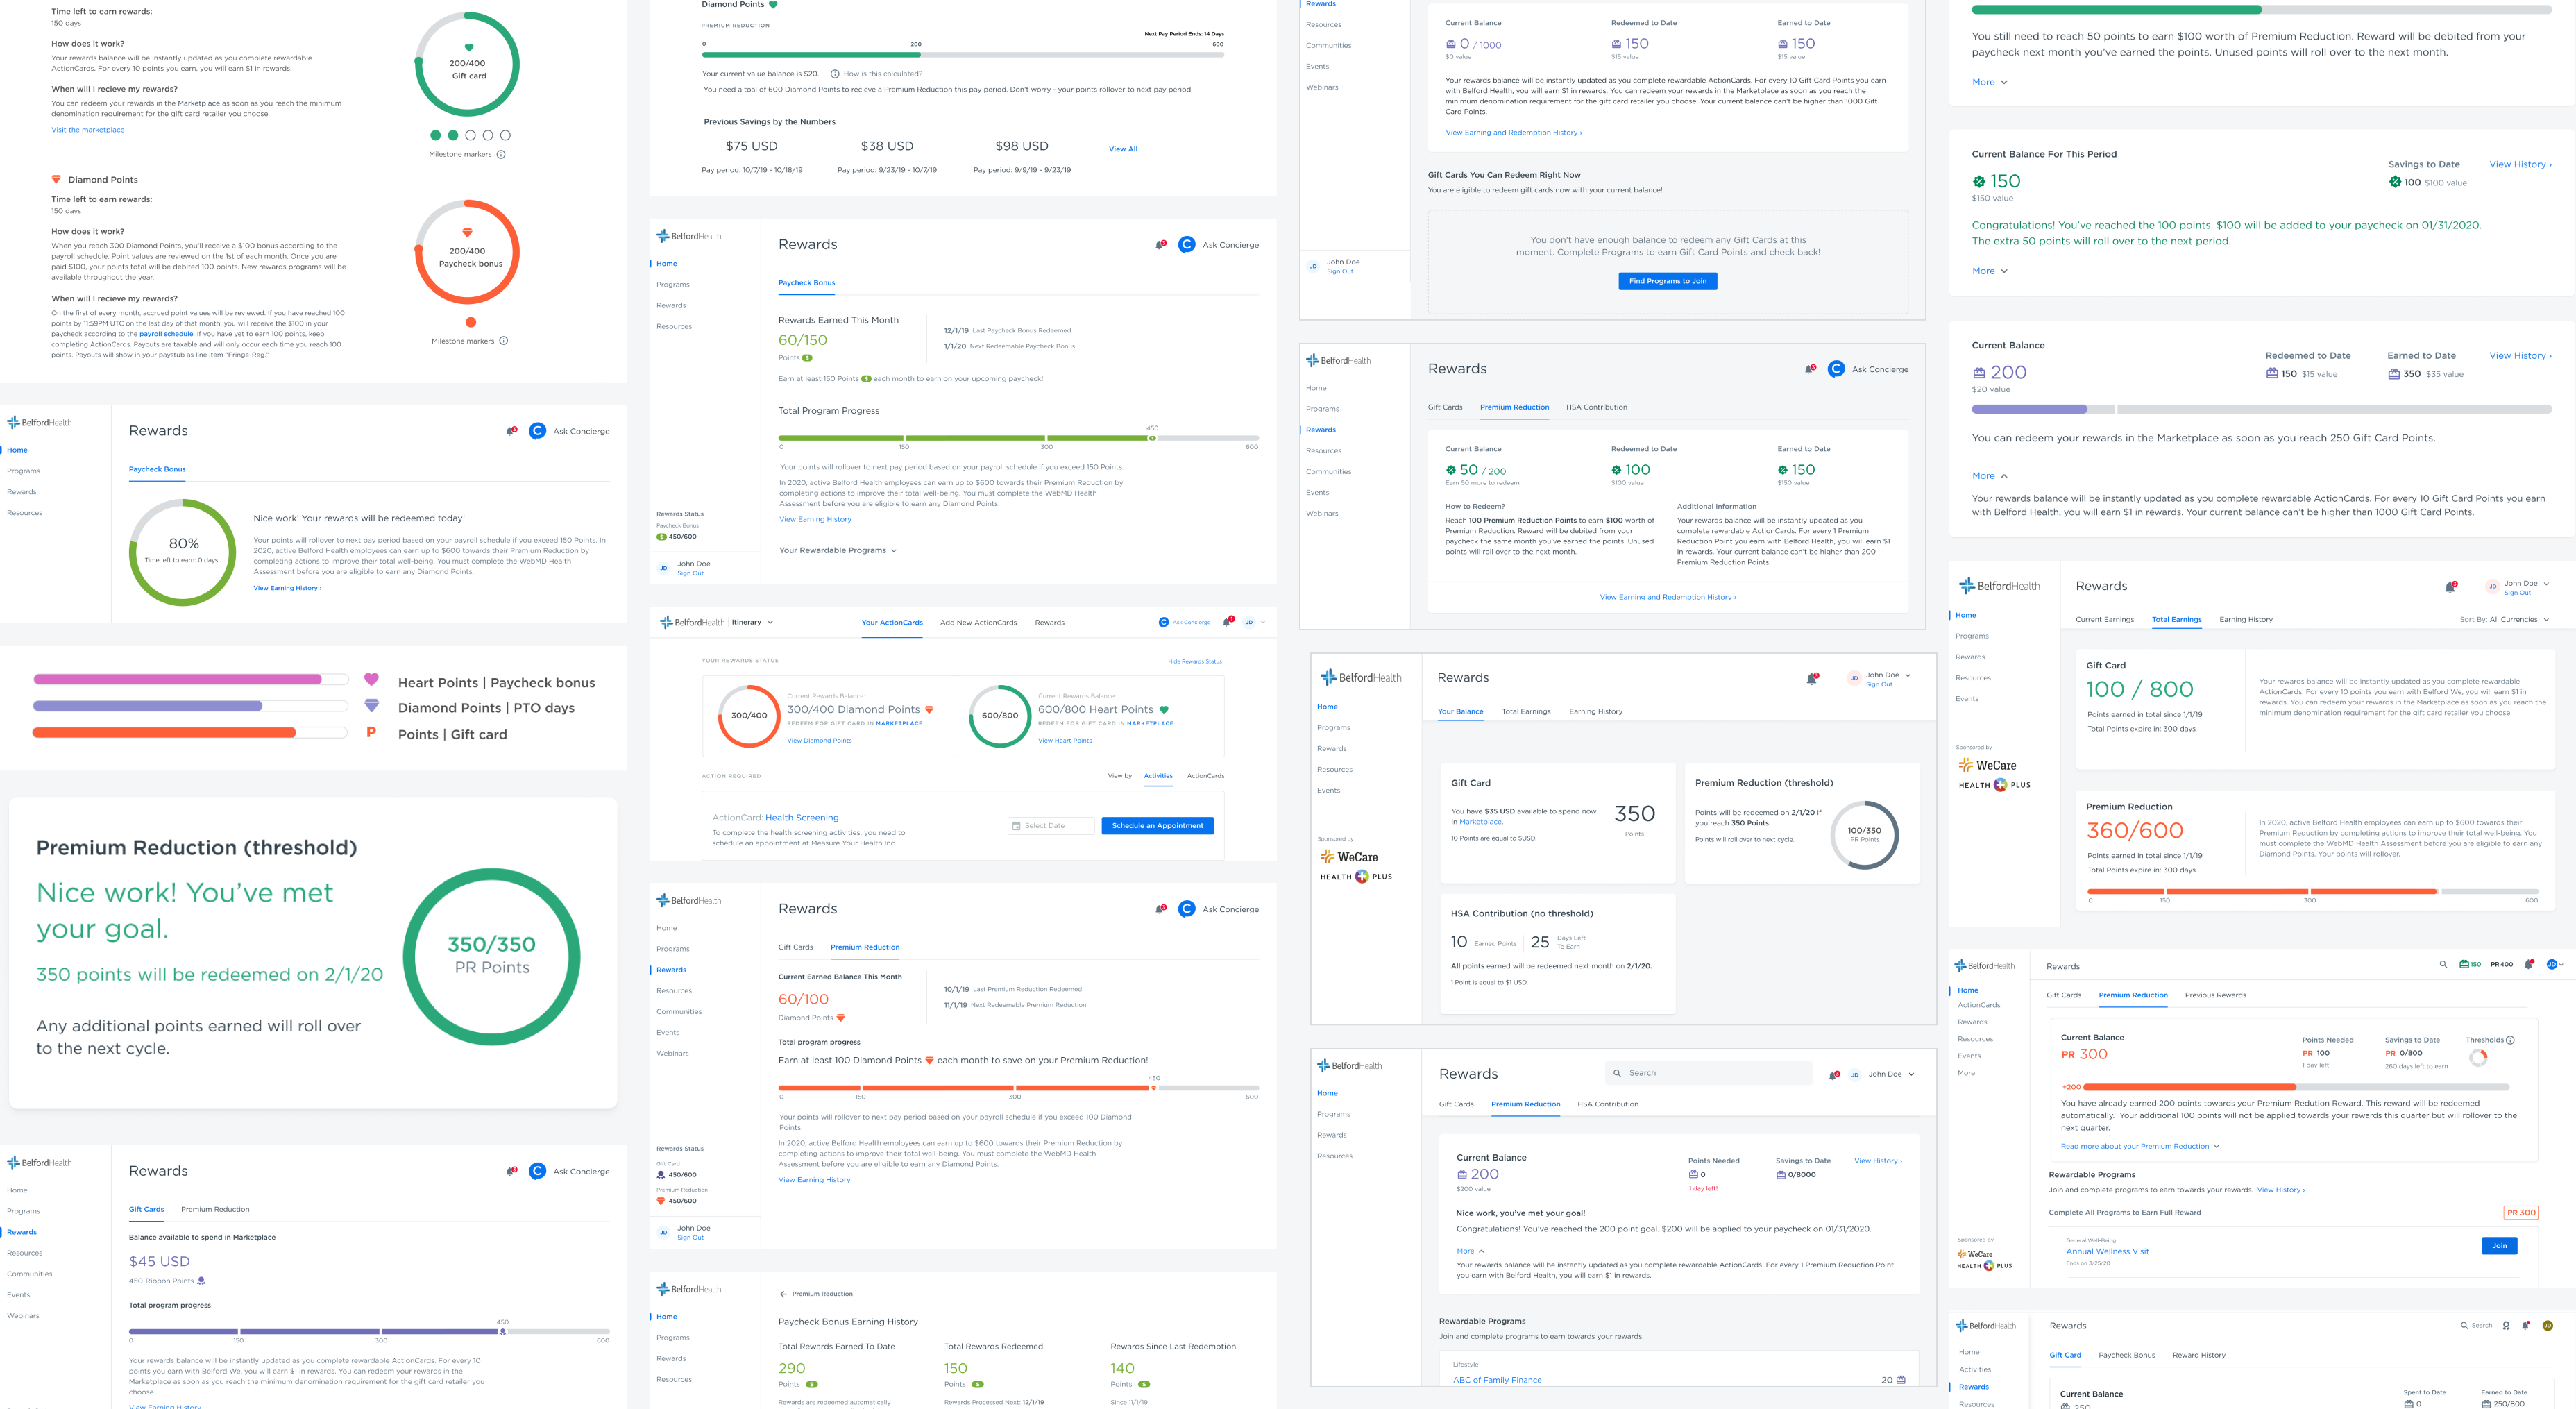 Explorations of the Rewards Dashboard in varying degrees of fidelity